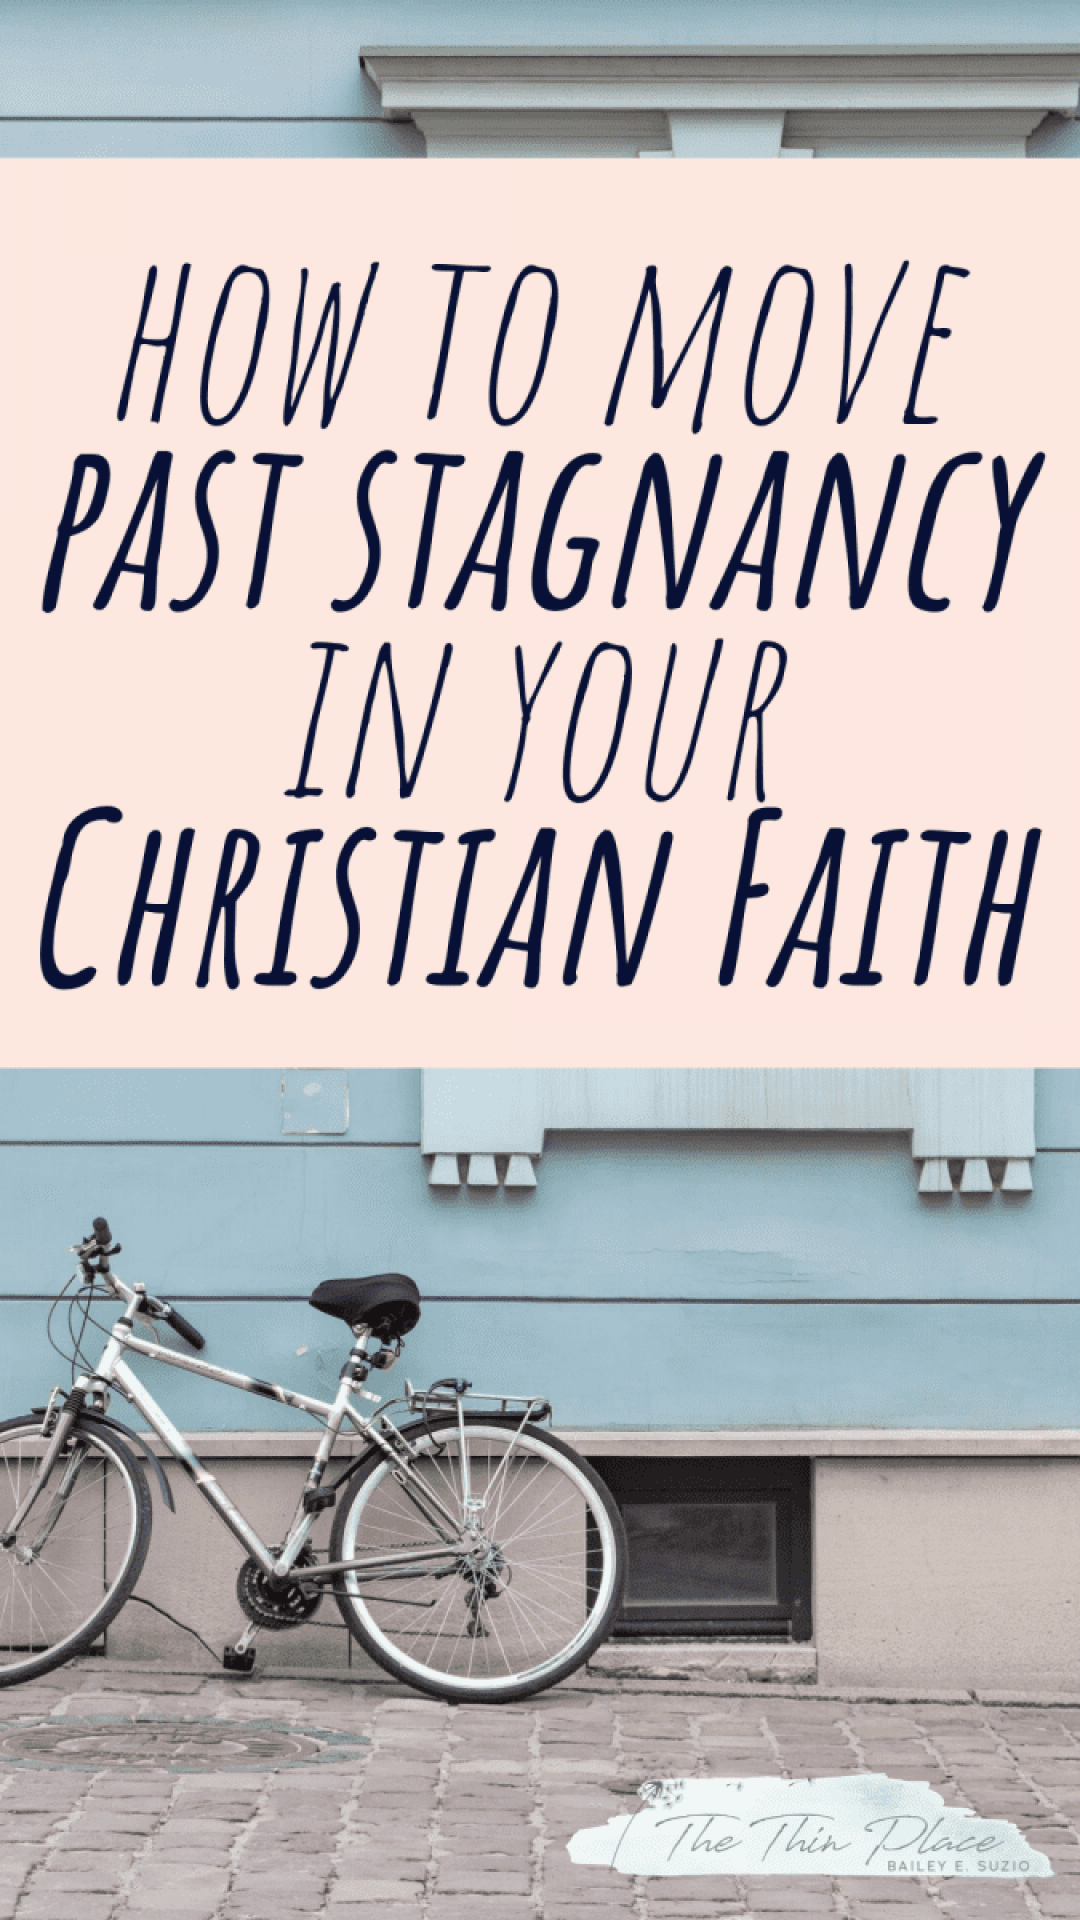 6 ways to get out of a spiritual rut and build a strong Christian faith? #faith #christianliving #devotinal #christianwomen #spiritualrut #christianliving #biblereading #prayer #fasting #churchlife #church #encouragement #christianencouragement